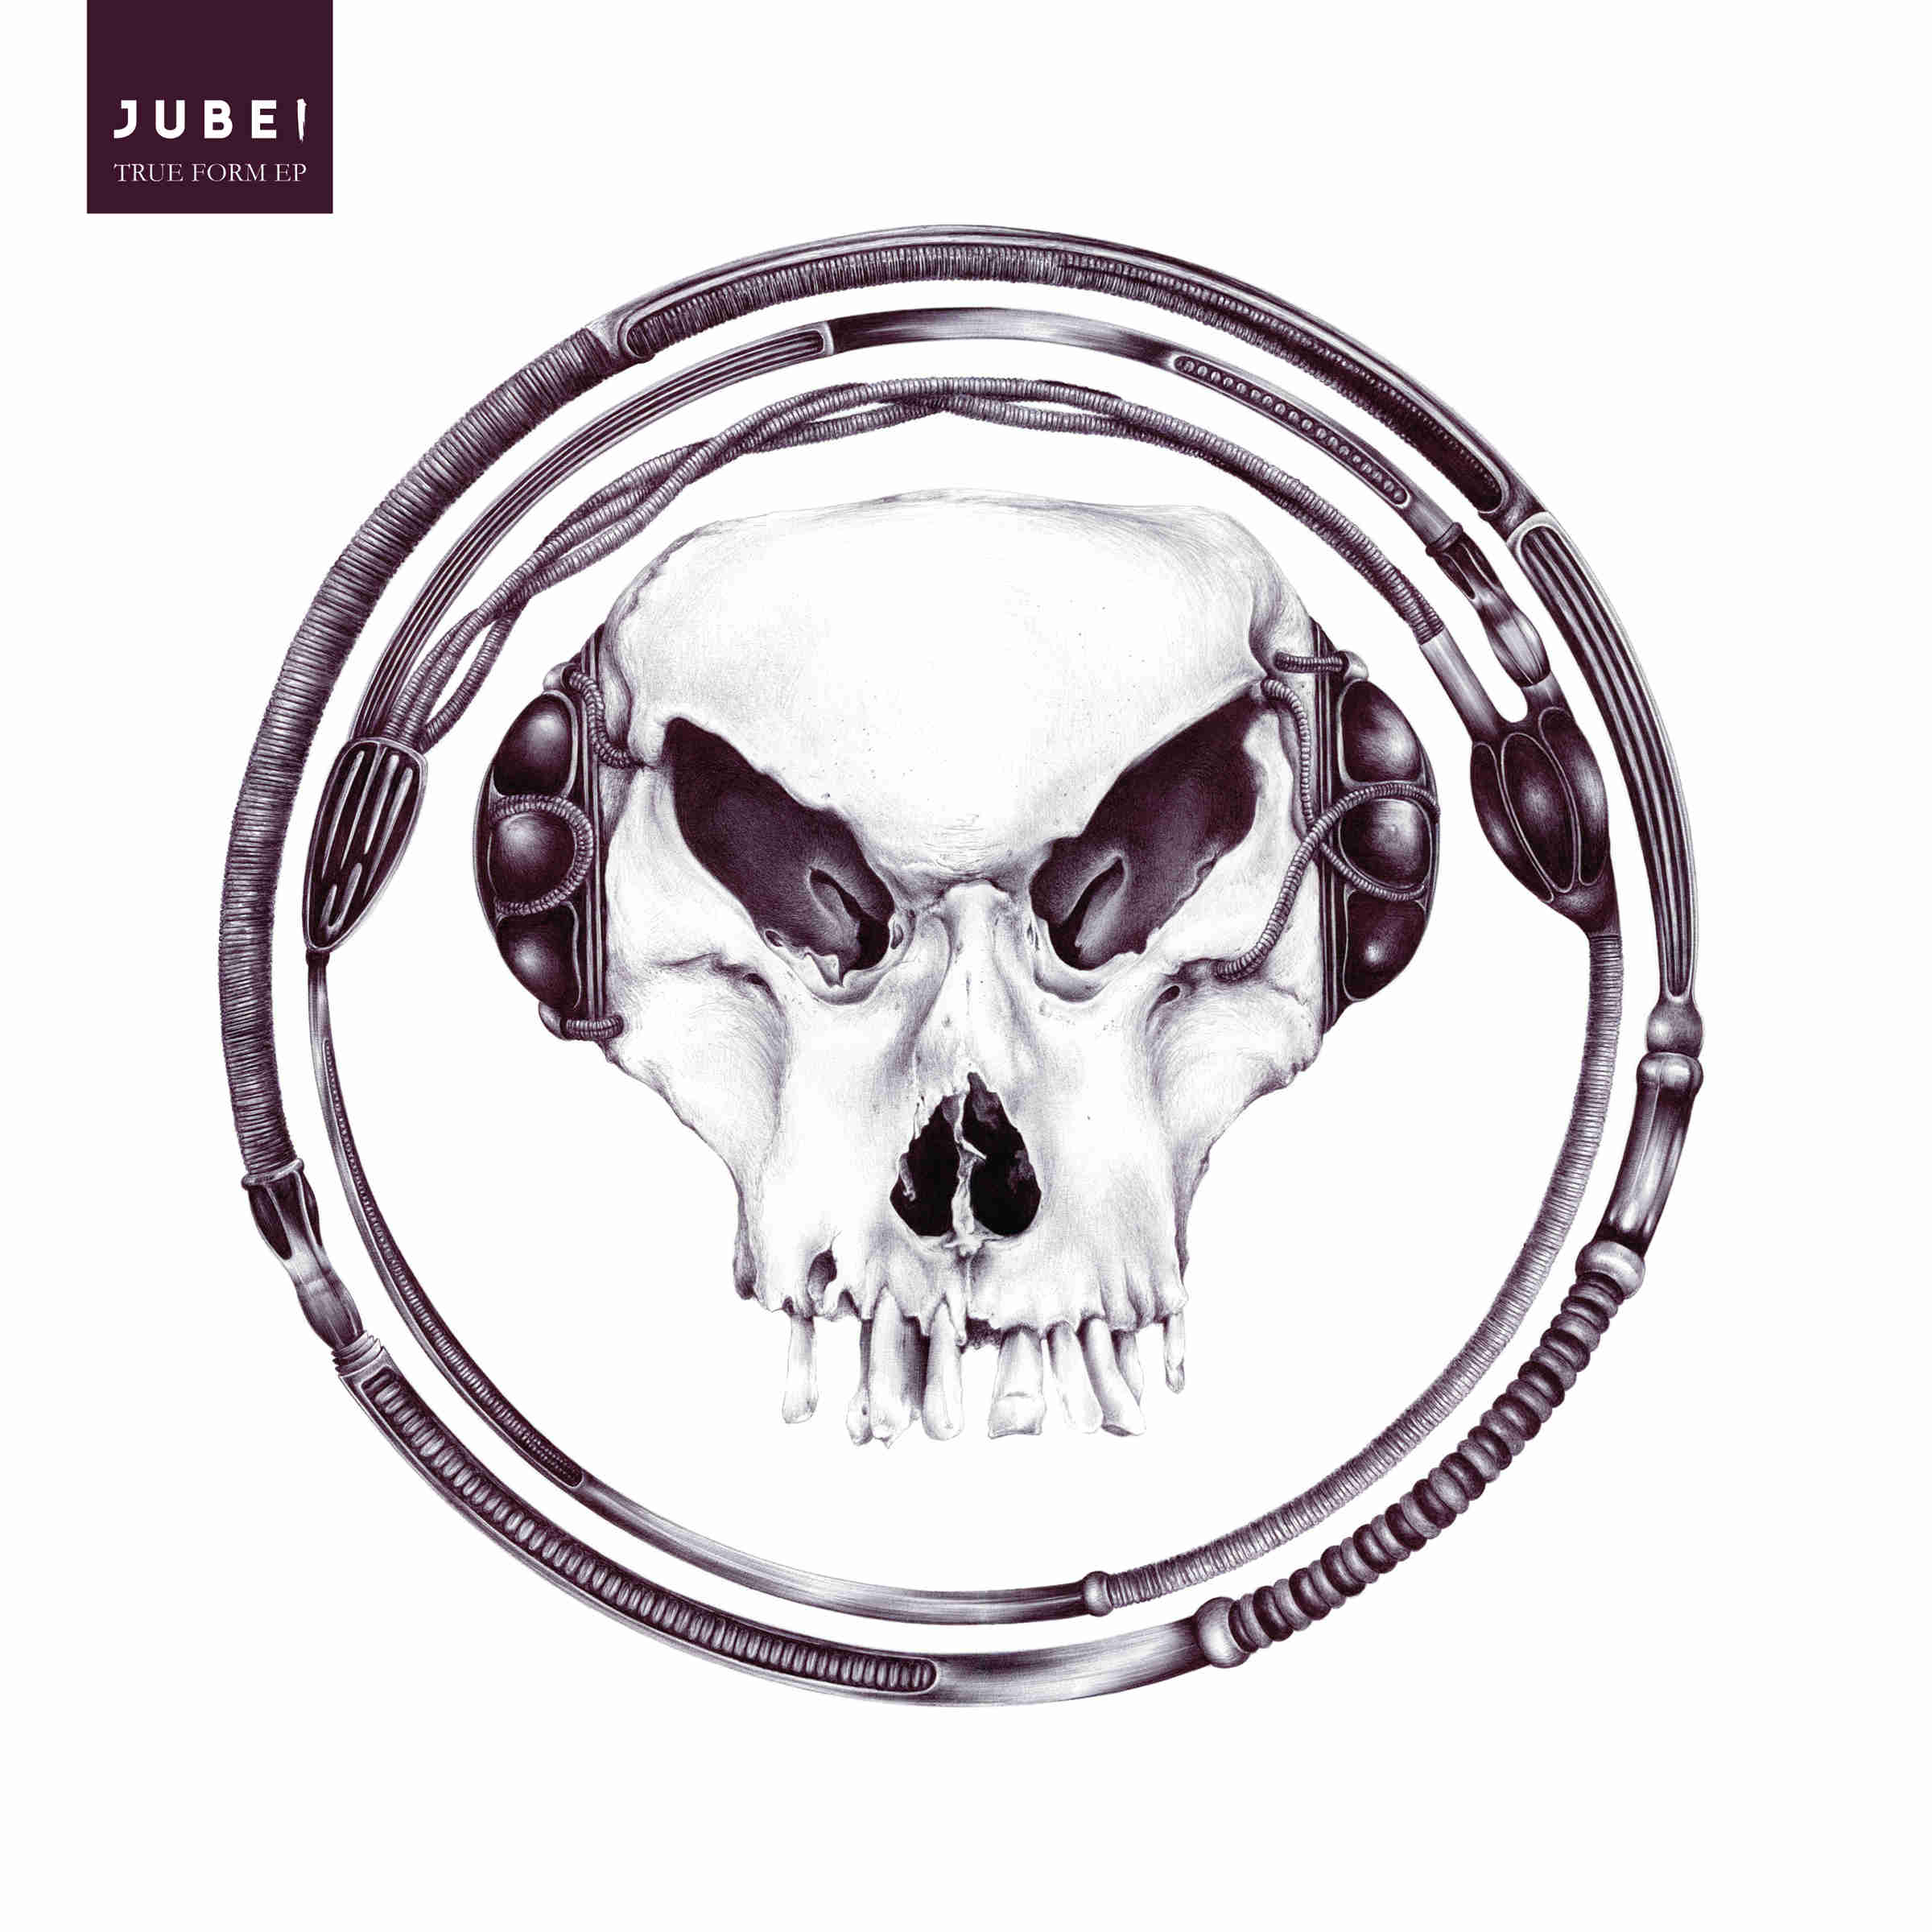 Jubei/TRUE FORM EP 12""